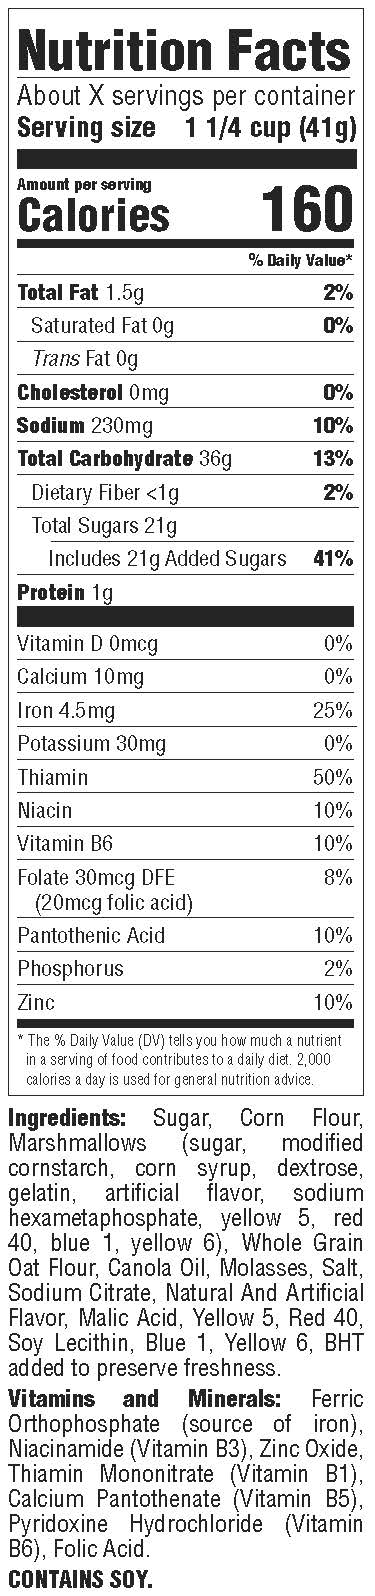 Berry Colossal Crunch Nutrition Facts Panel